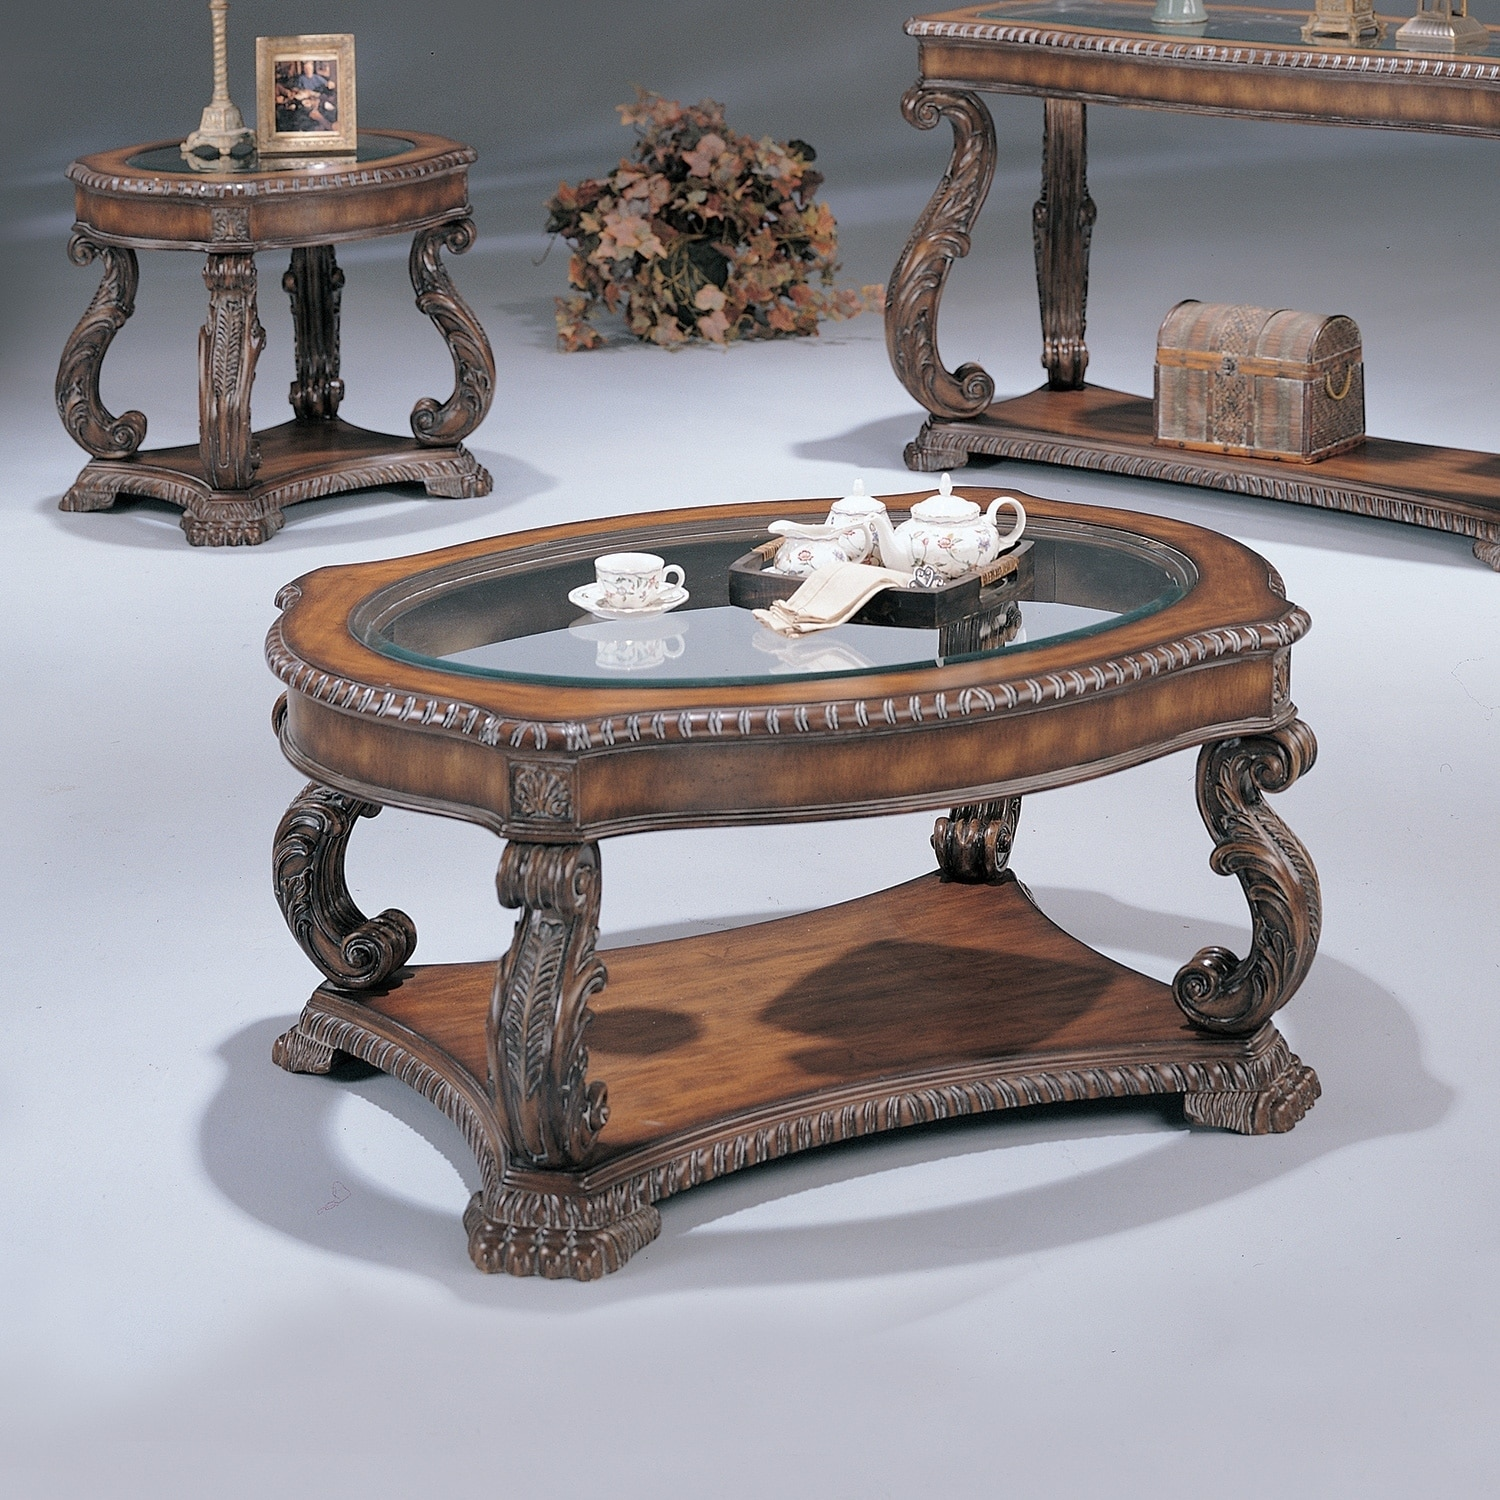 Coaster Company Antiqued Brown Finish Wood with Glass Inlay Ornate Coffee Table (BROWN)